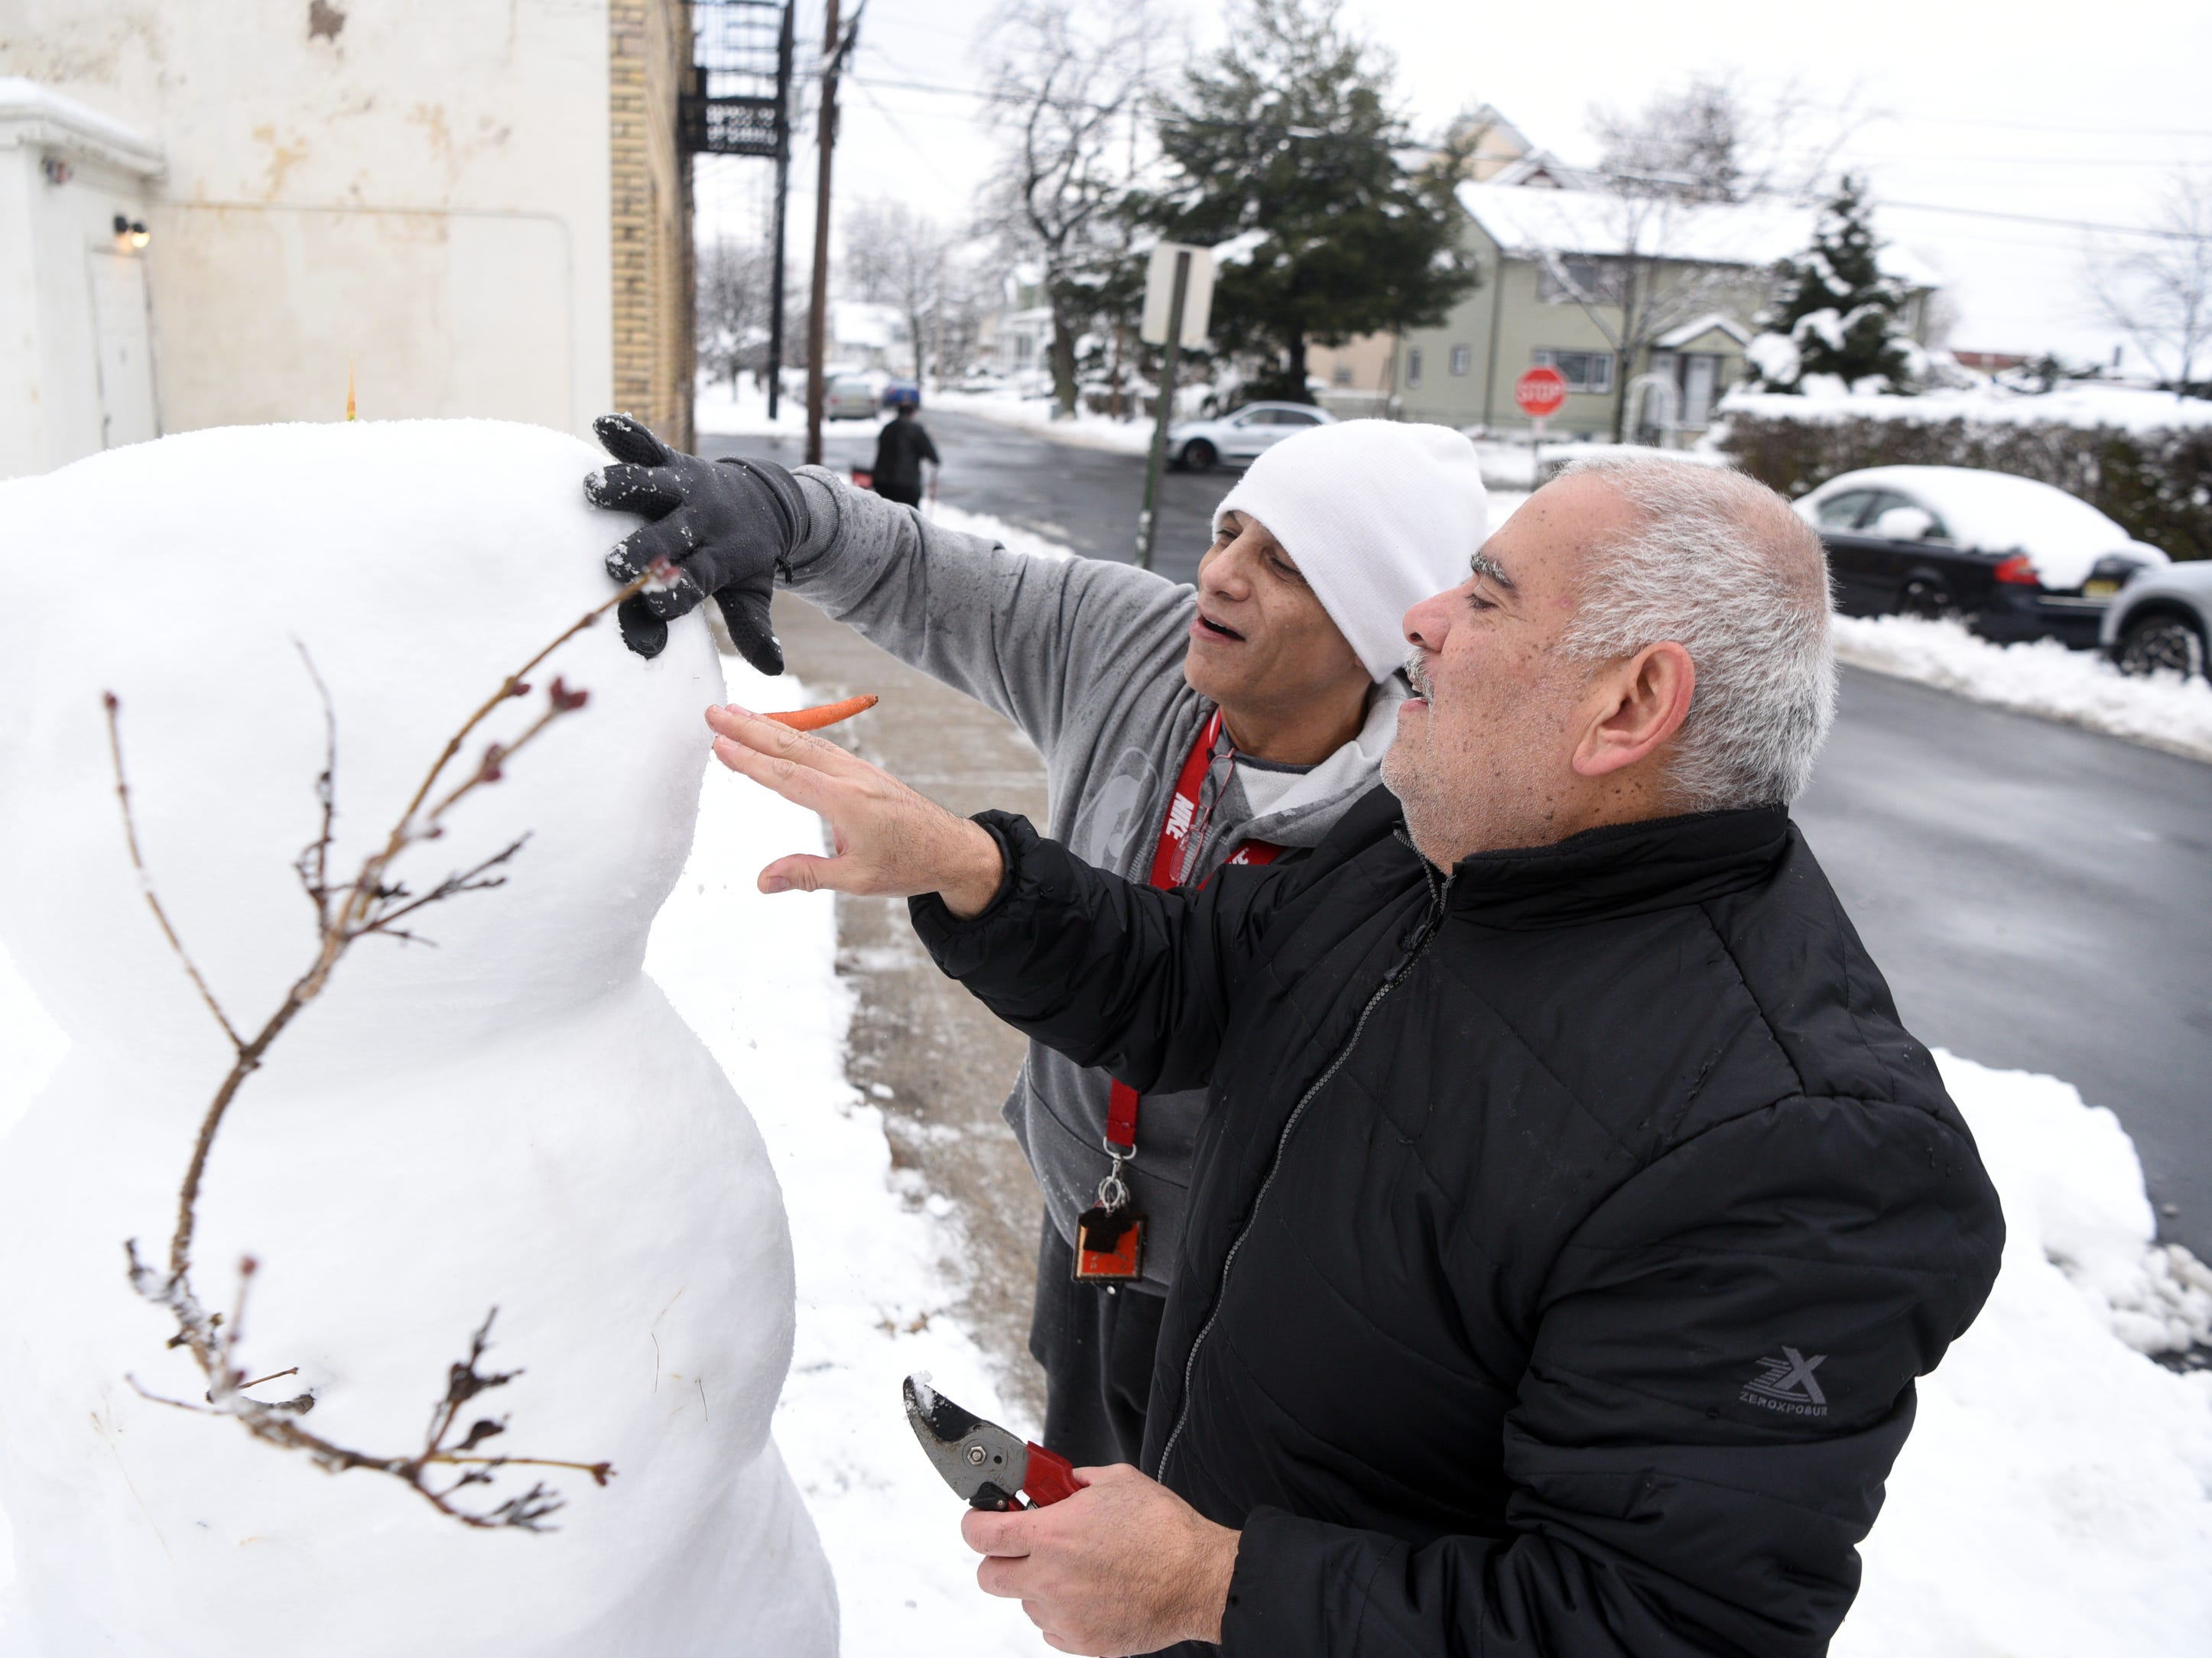 Michael Rivera and Max Melara place eyes in snowman Rivera built for his daughters before they wake up on Monday, March 4, 2019 in Clifton.